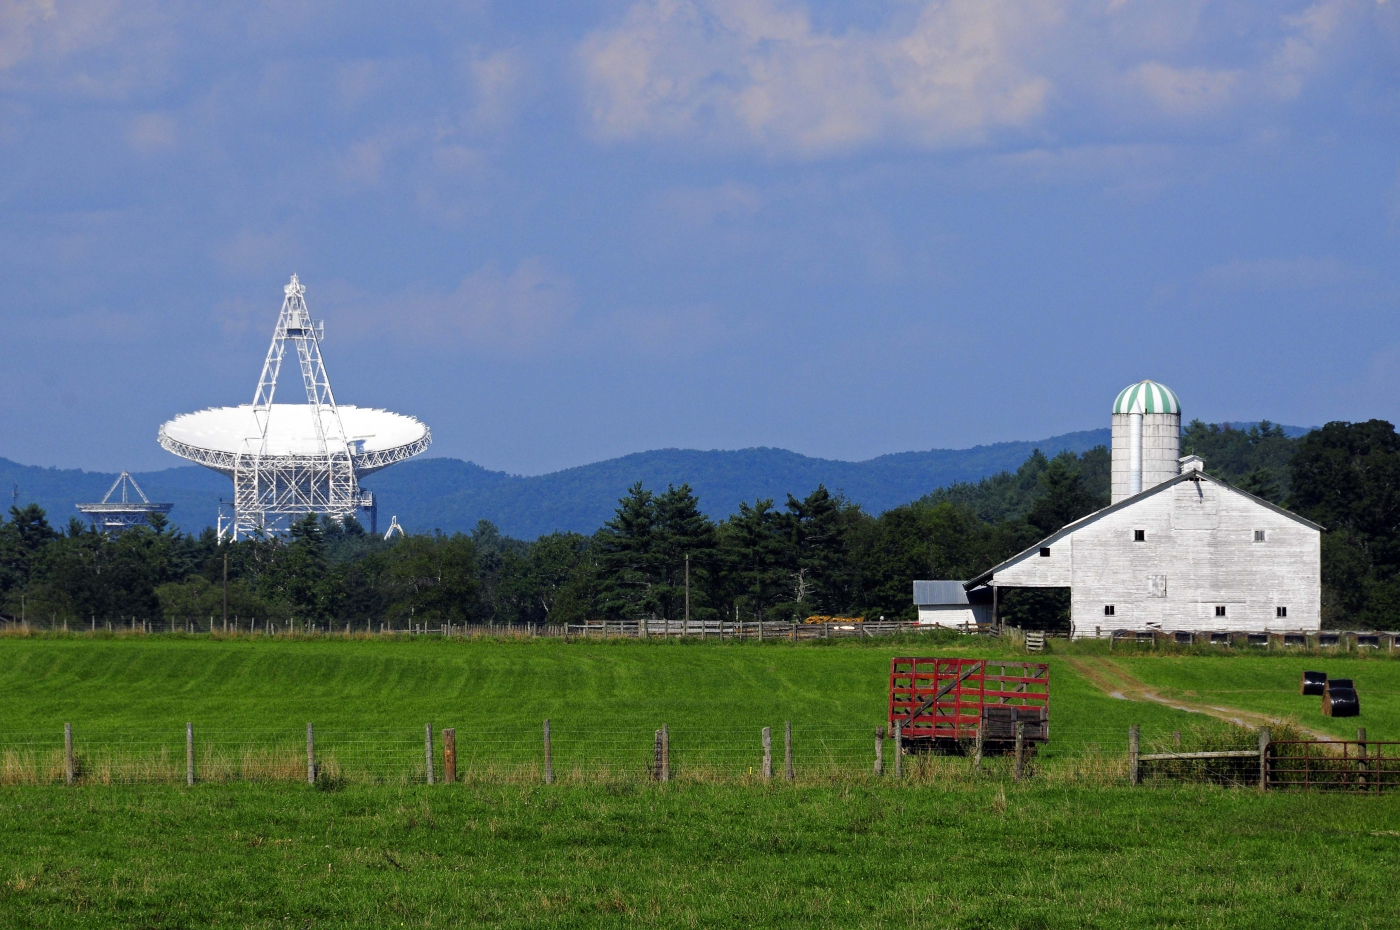 Check out the world's largest maneuverable telescope at the National Radio Astronomy Observatory.